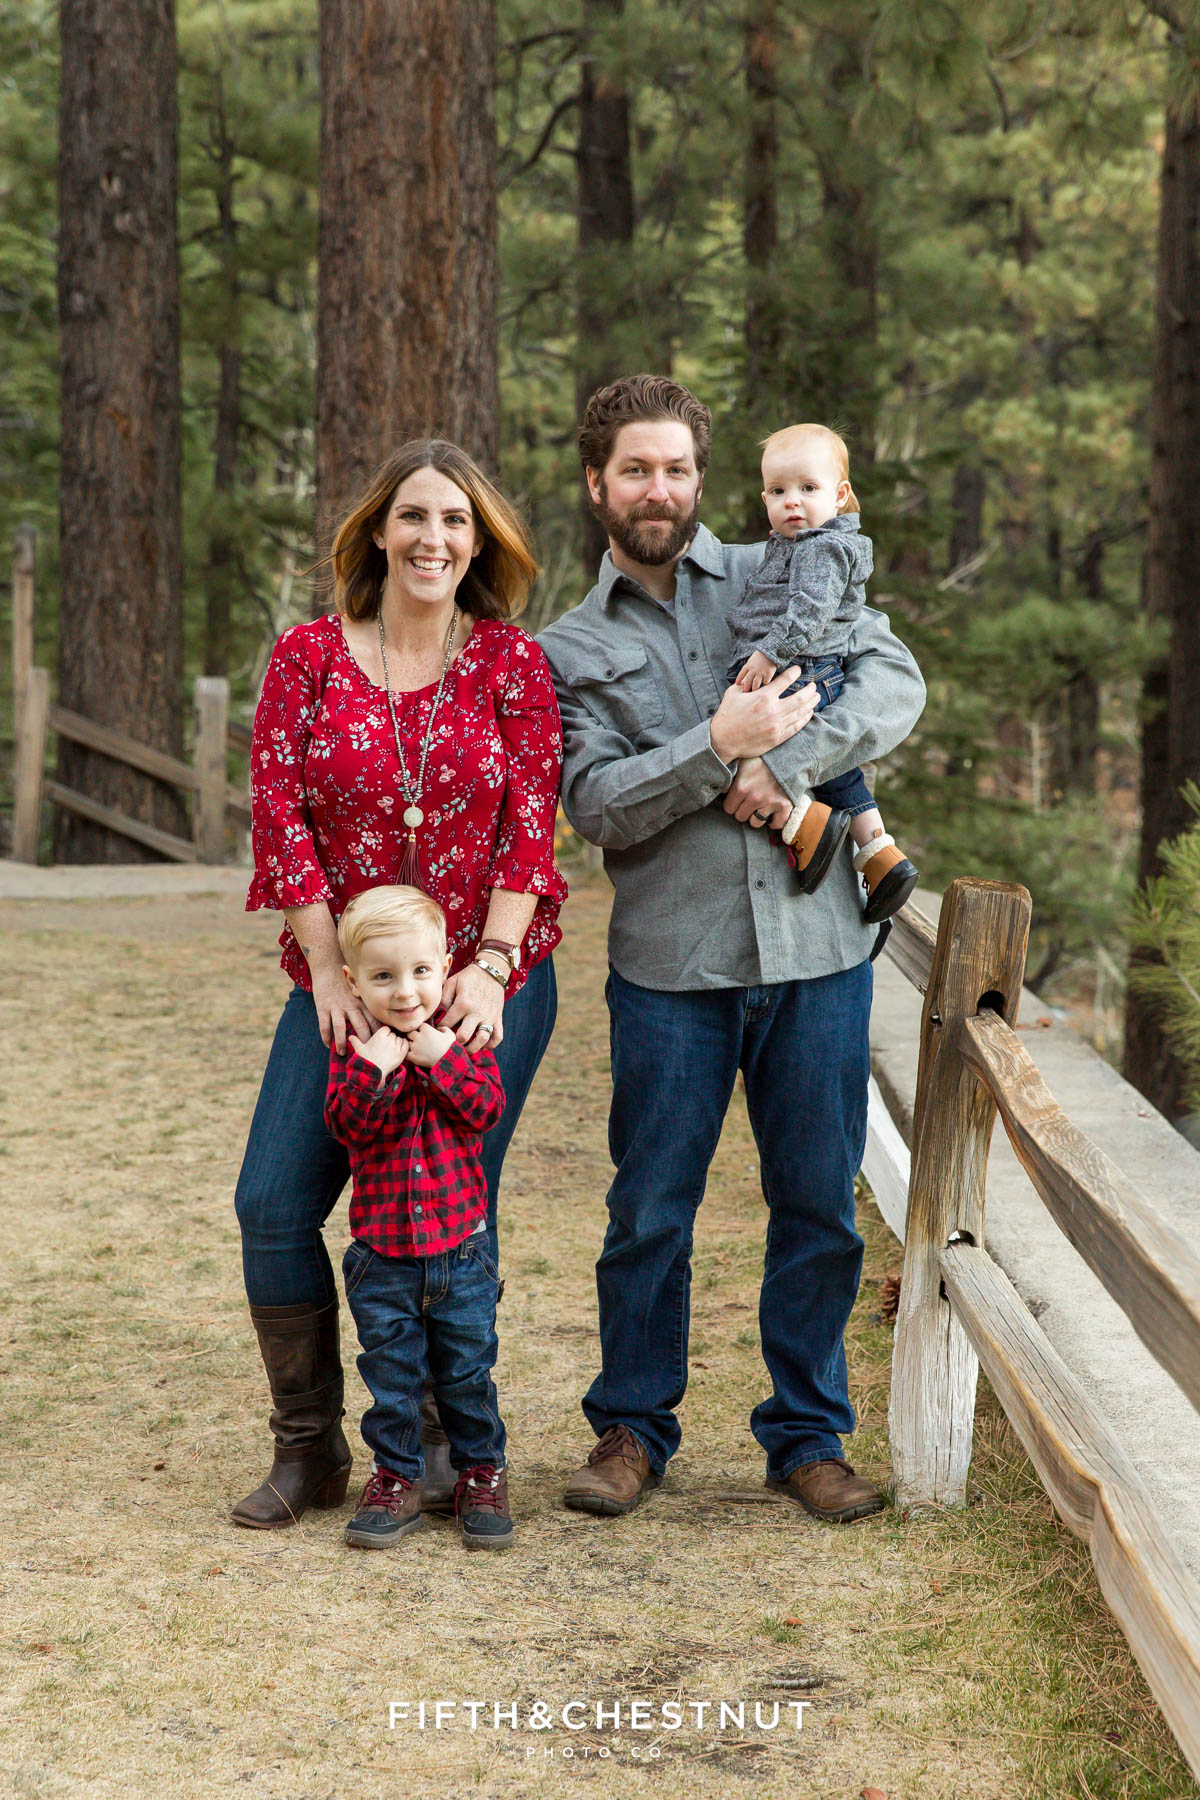 Sweet family of four poses for reno family photos at galena creek park wearing red and gray